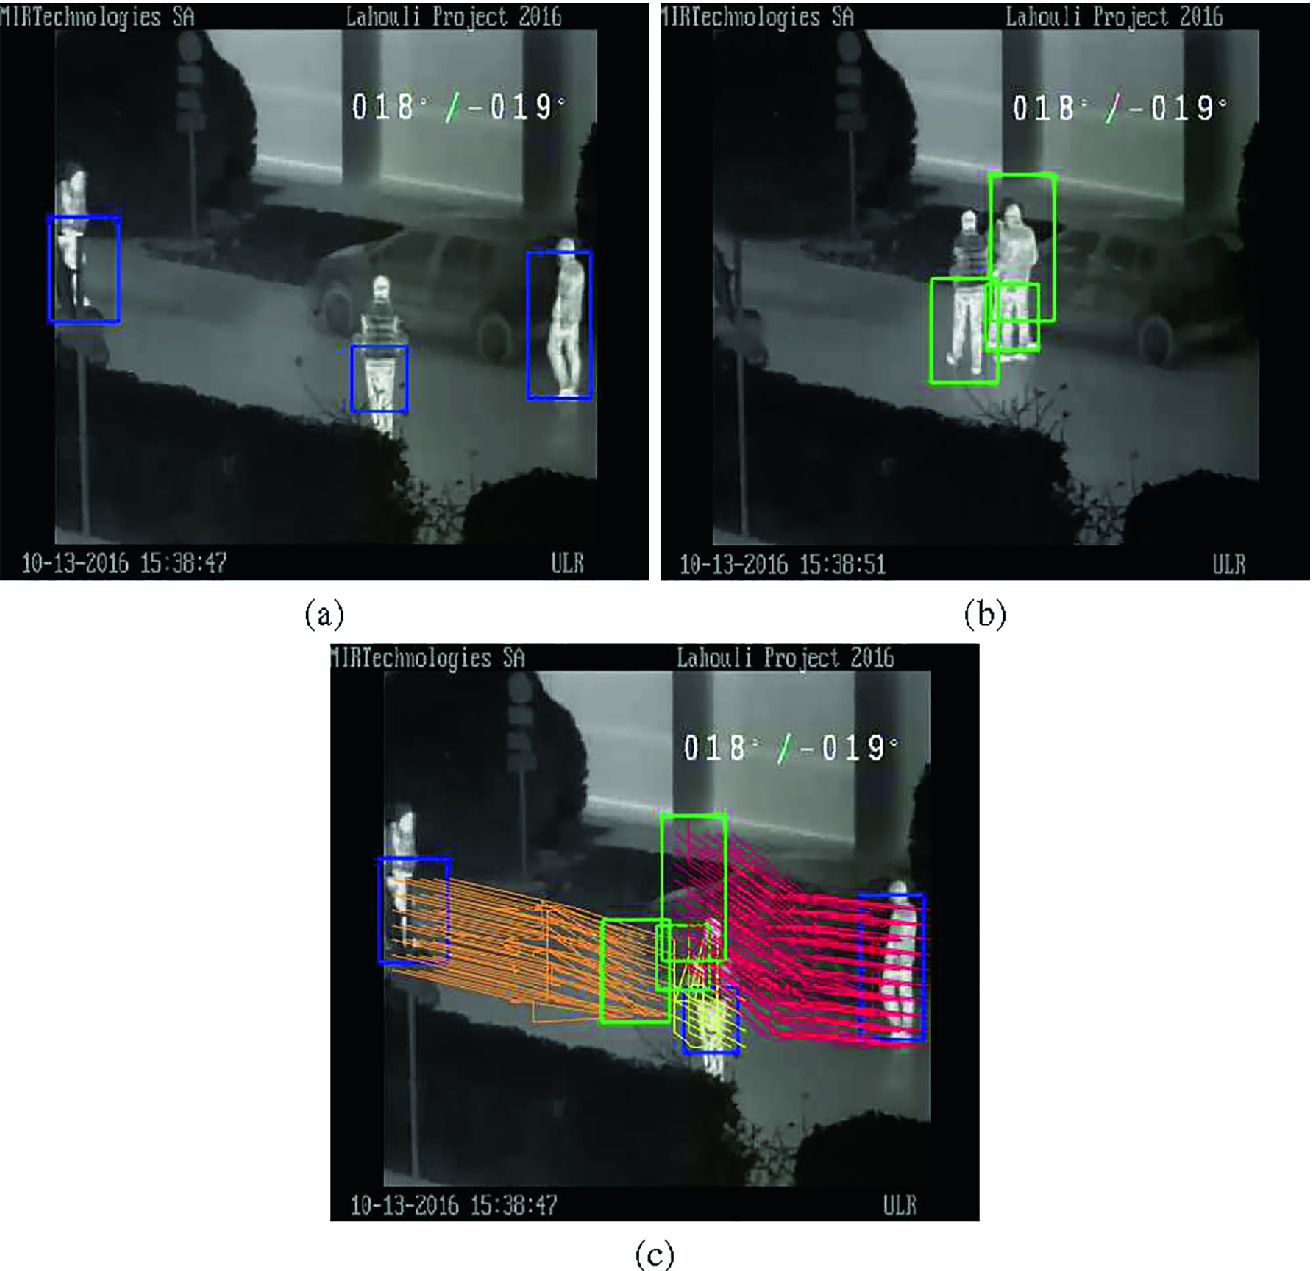 Pedestrian Detection and Trajectory Estimation in the Compressed